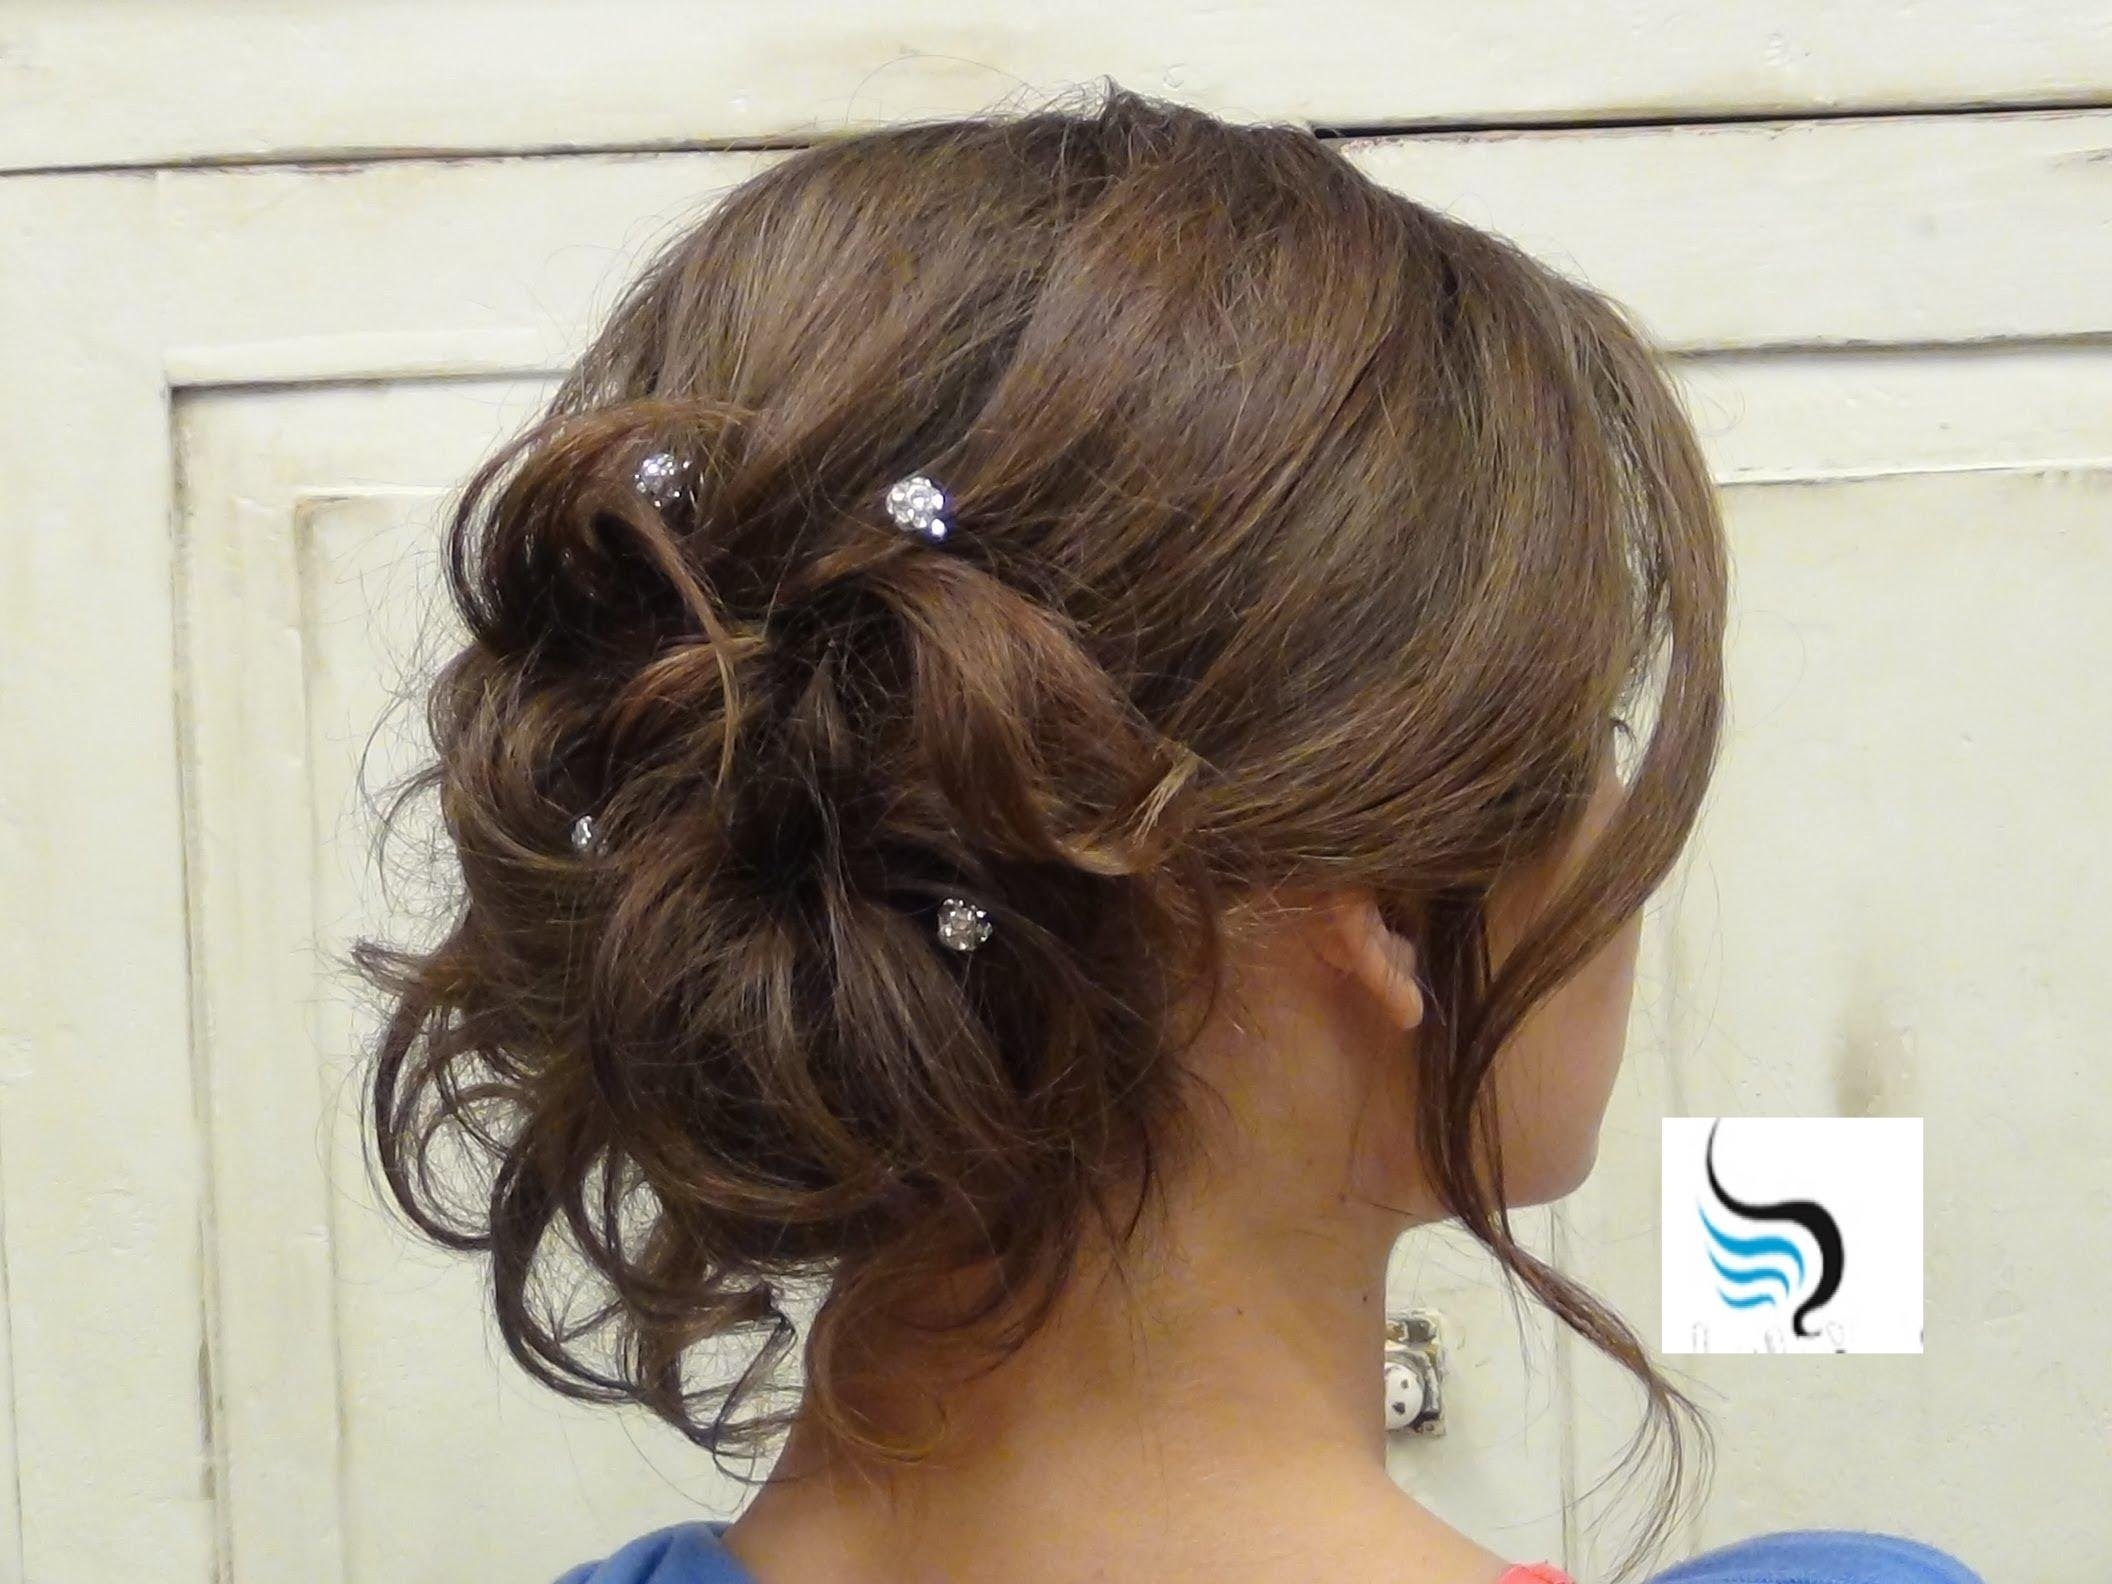 Soft Curled Updo) For Long Hair Prom Or Wedding Hairstyles – Youtube Inside Well Known Tied Up Wedding Hairstyles (View 11 of 15)